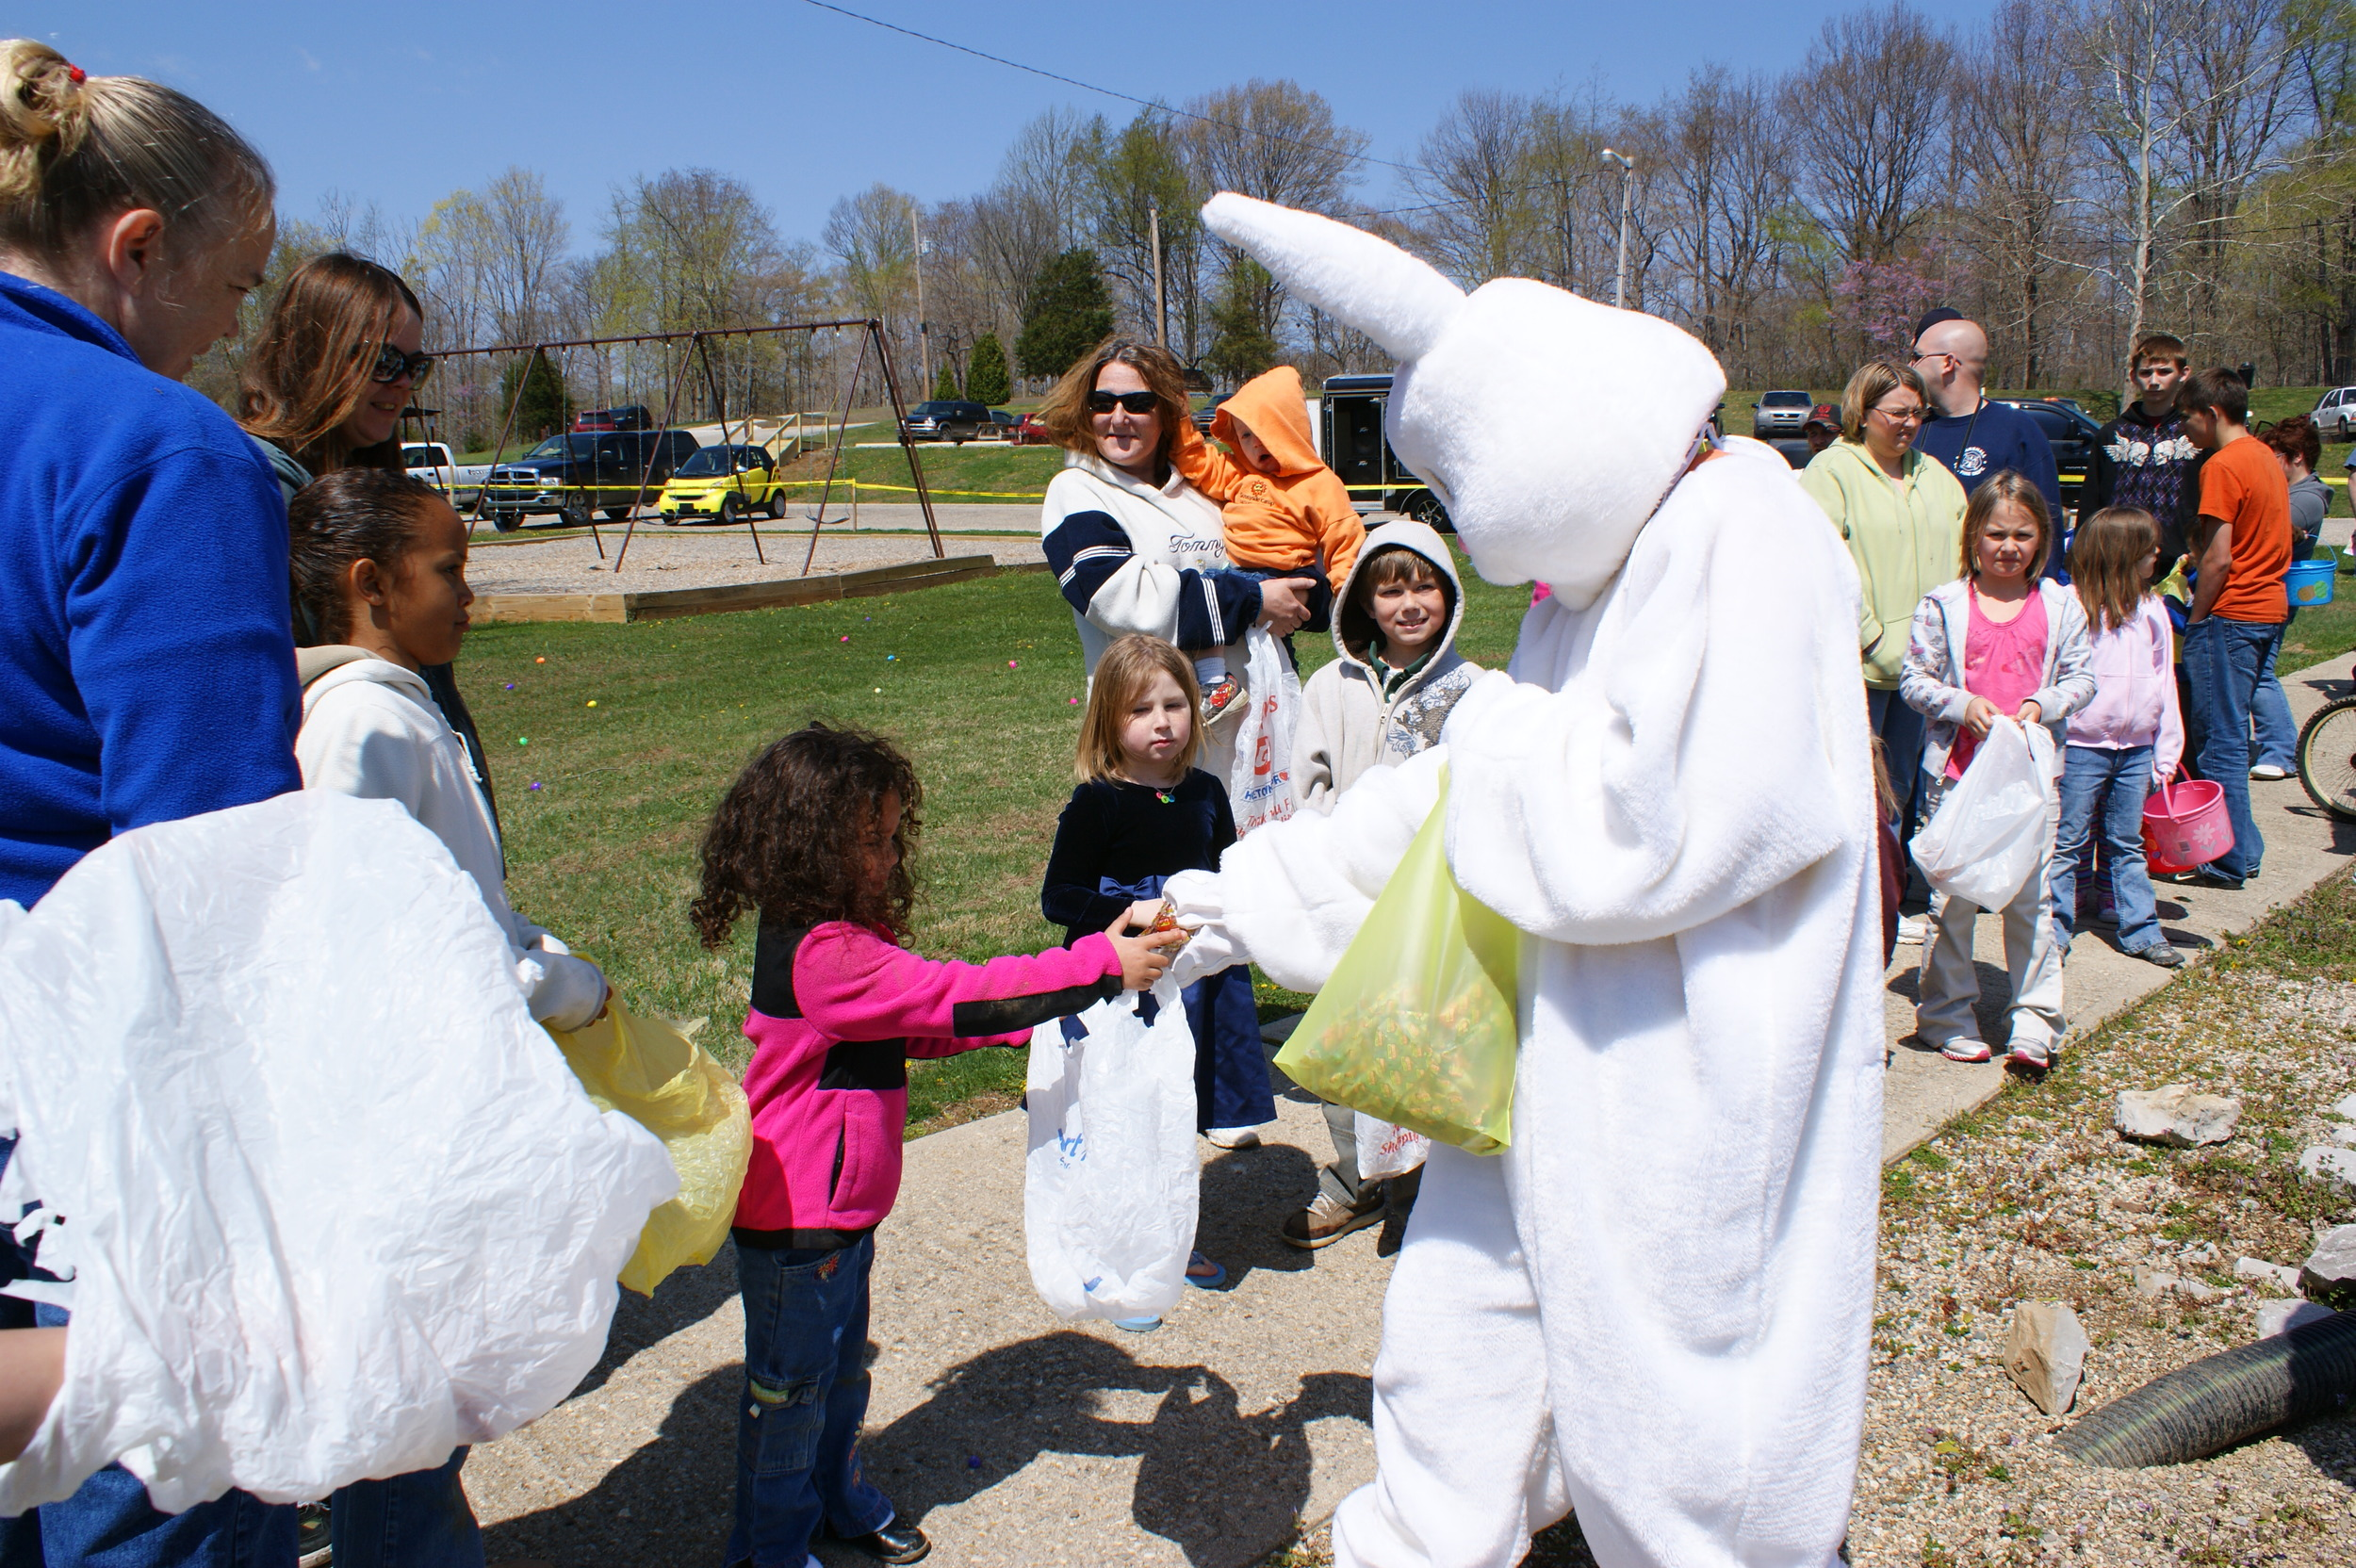 Peter Cottontail passing out candy to the kiddos!